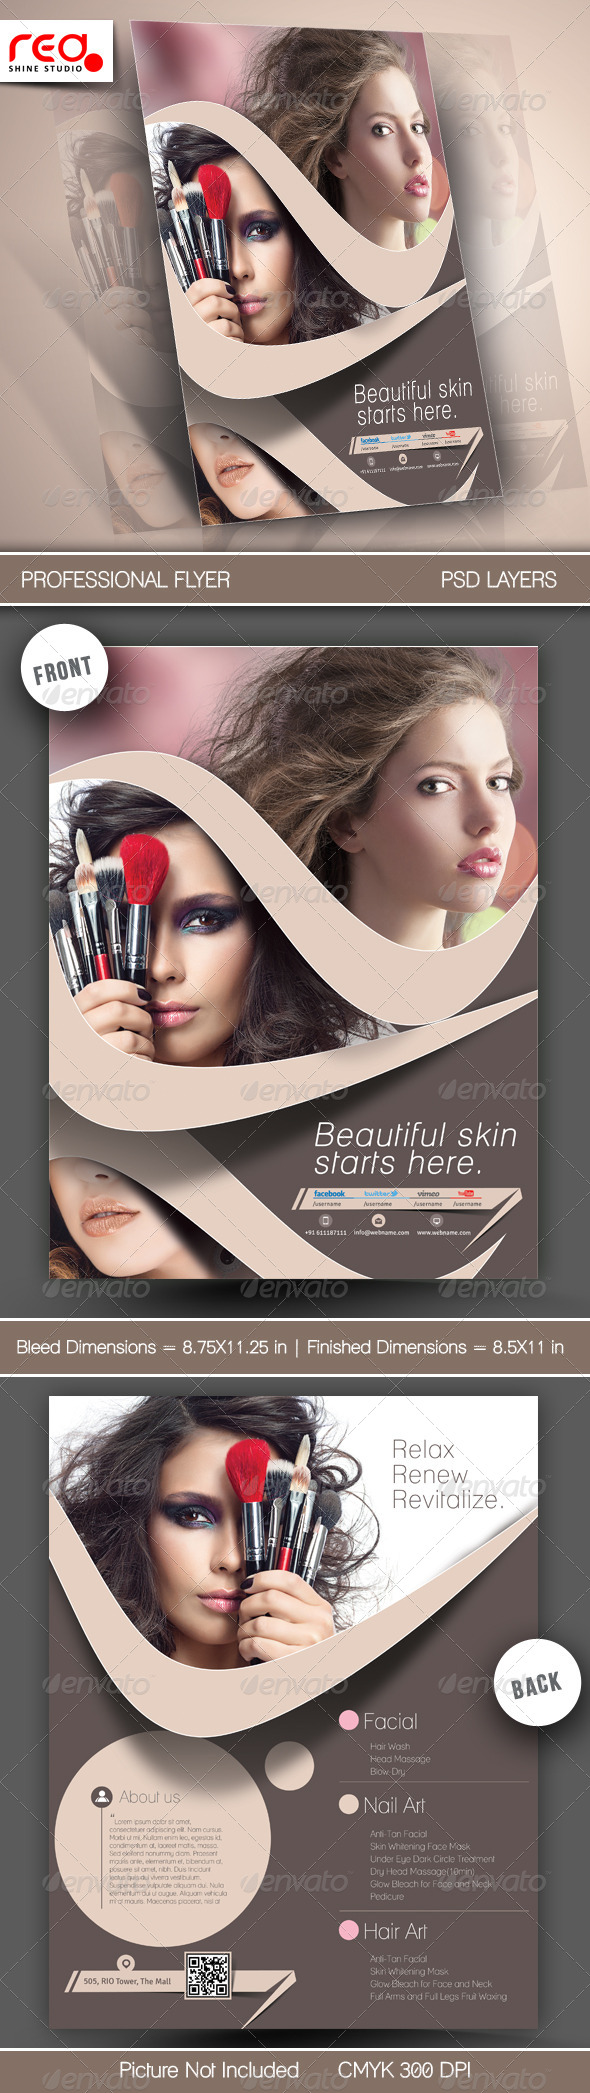 Beauty Salon Flyer Template - Commerce Flyers